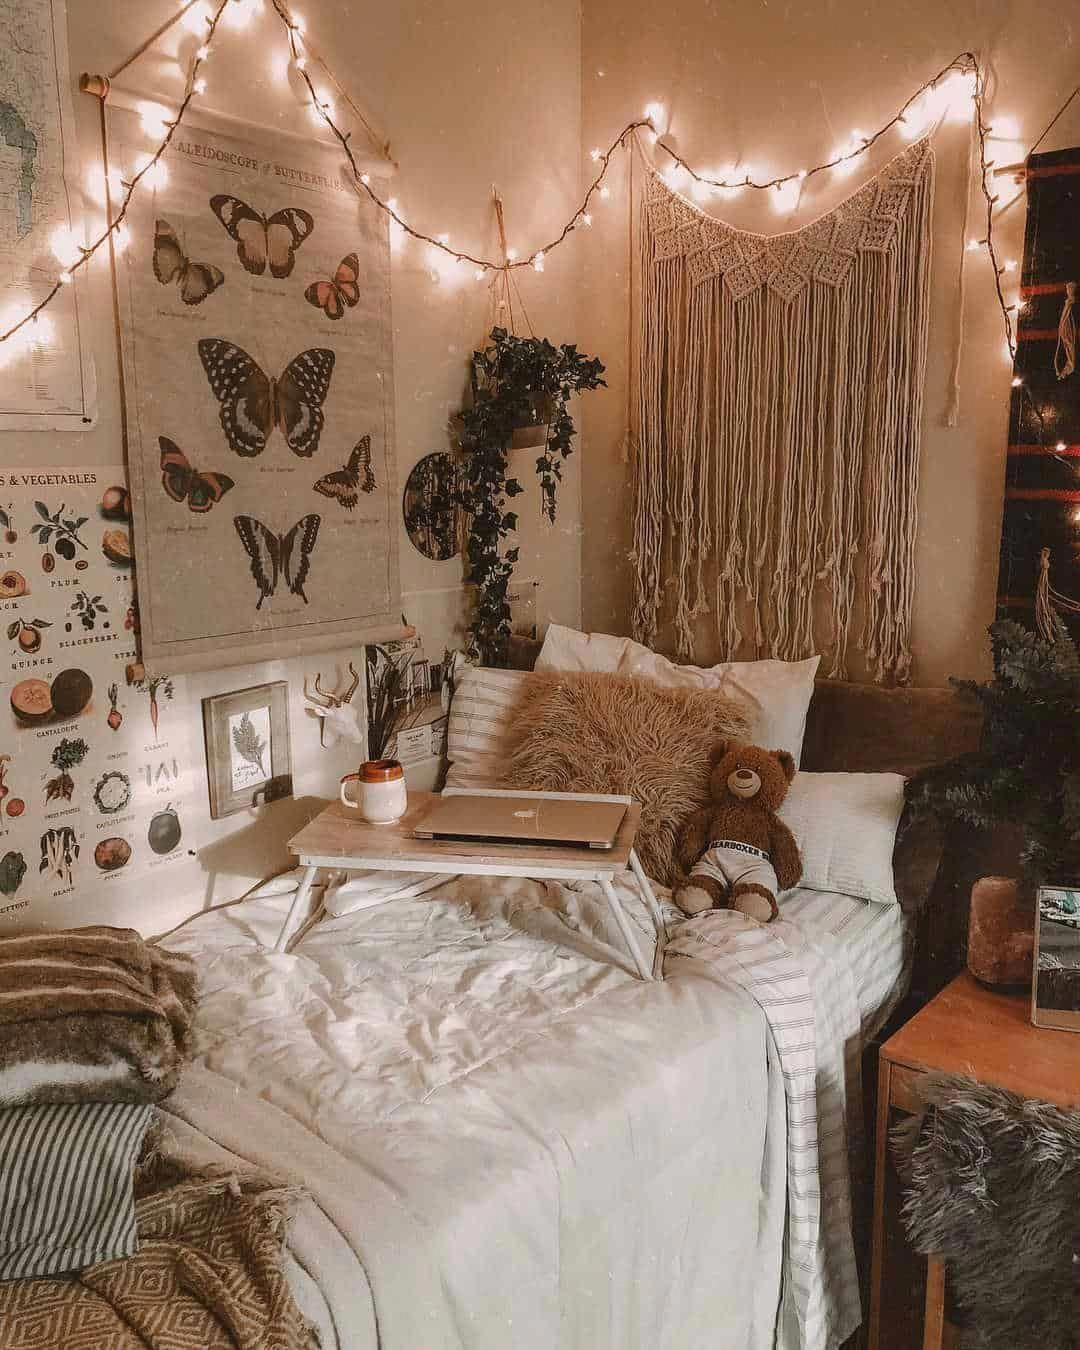 Dorm room ideas and layouts that are mind meltingly good! Decor inspo for colleg...